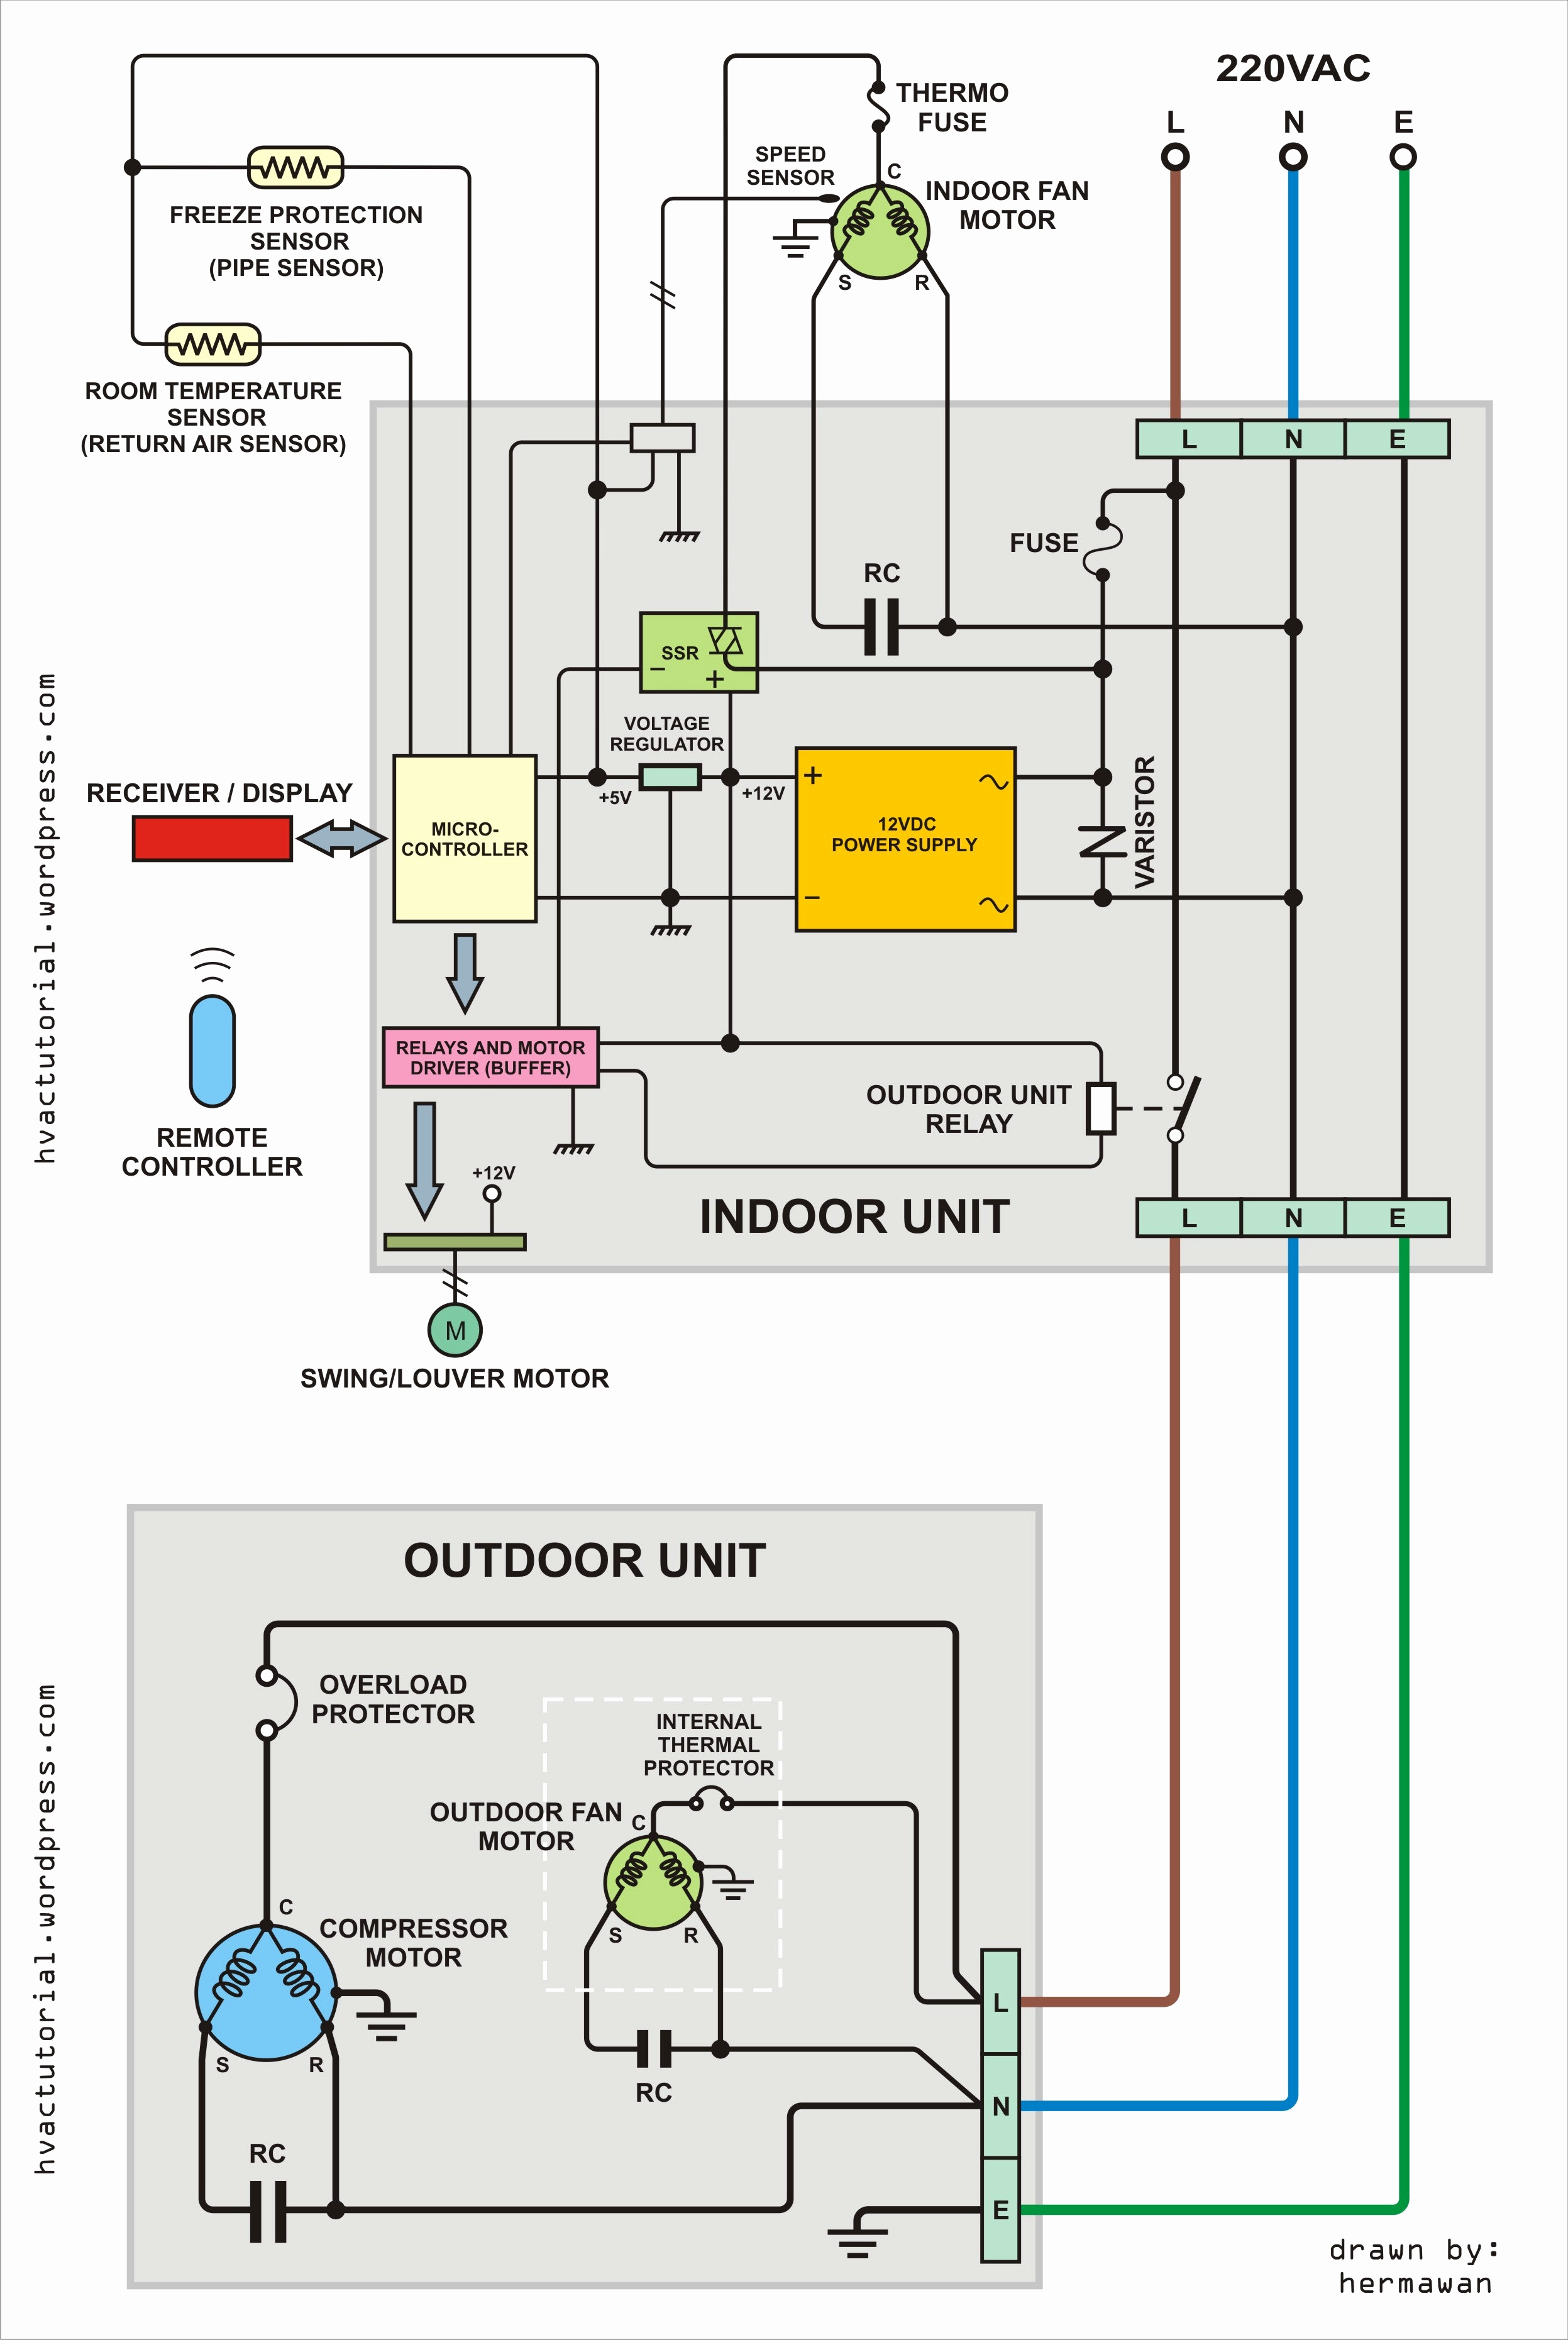 Mitsubishi Mini Split Wiring Diagram Gallery Collection. Mitsubishi Mini Split Wiring Diagram Downloadmitsubishi For System Air Download. Mini Cooper. Basic Mini Wiring Diagram At Scoala.co